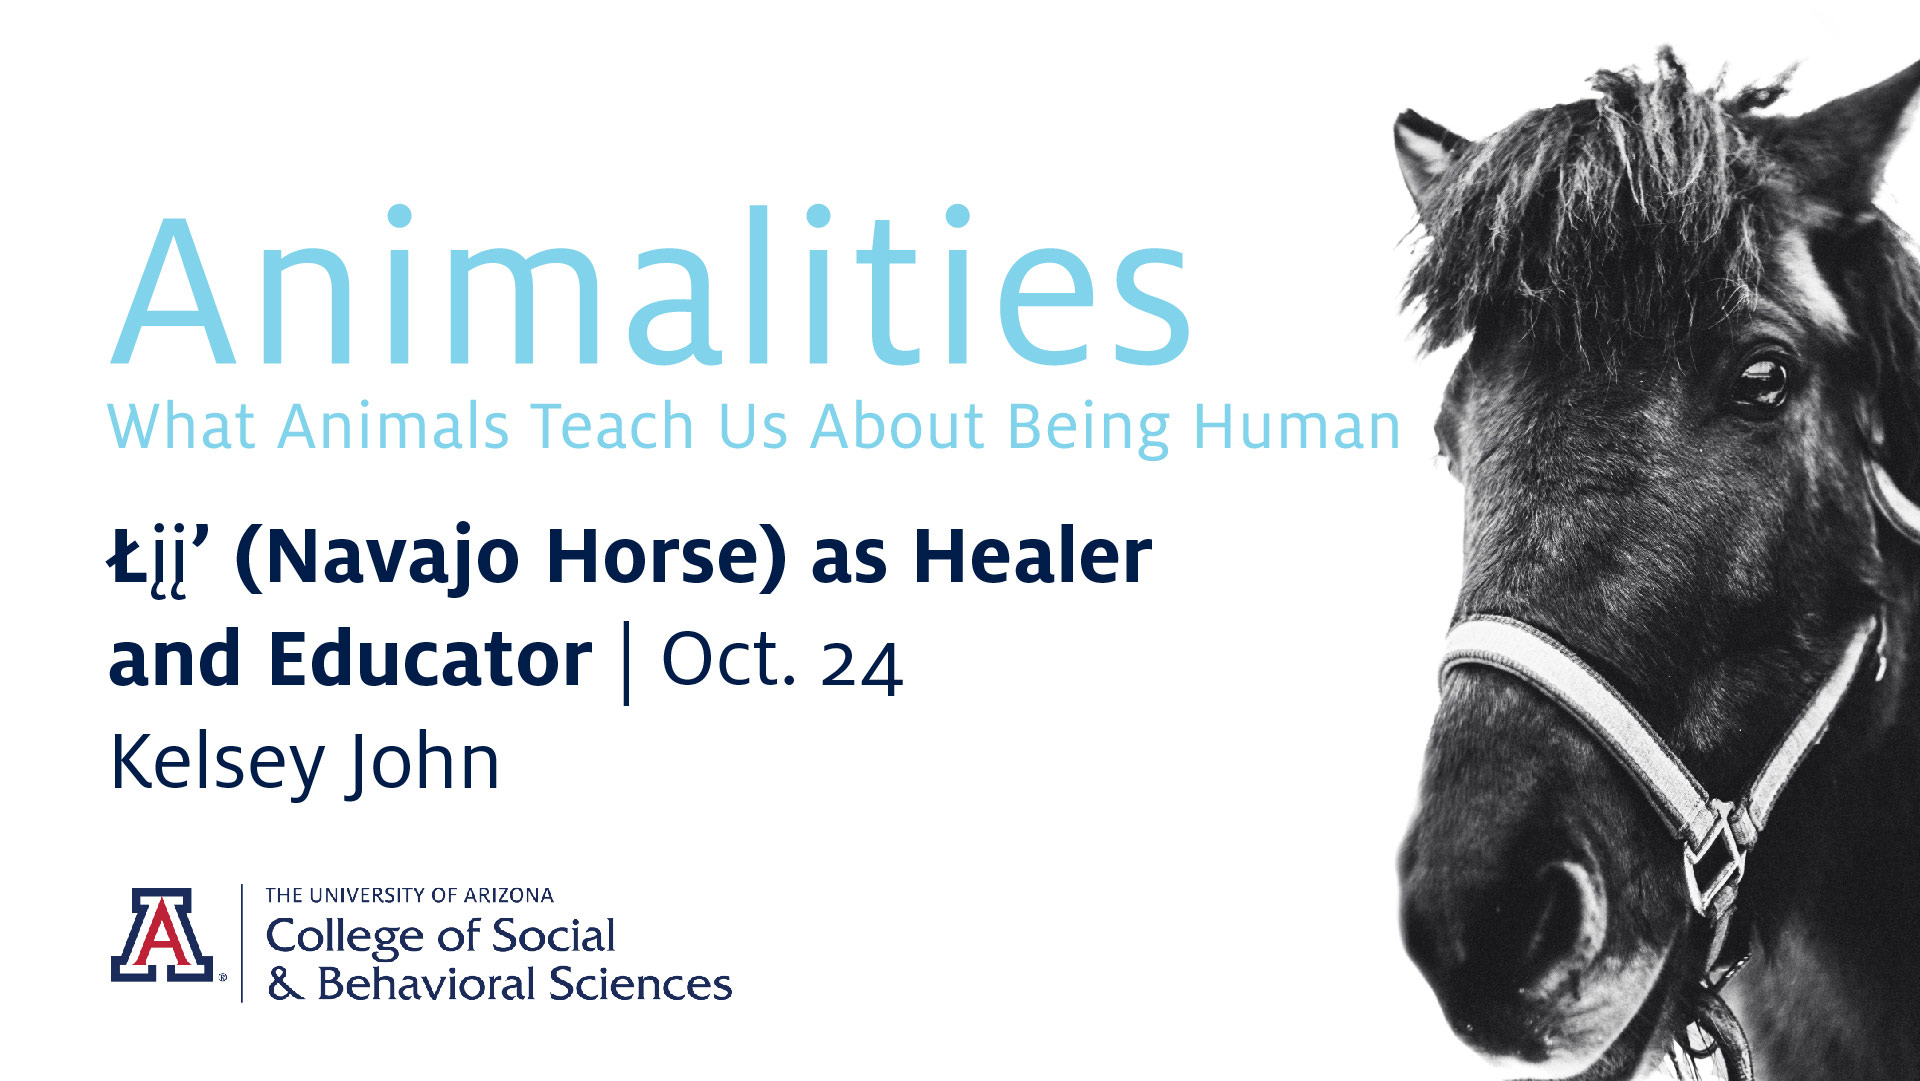 Navajo Horse as Healer and Educator